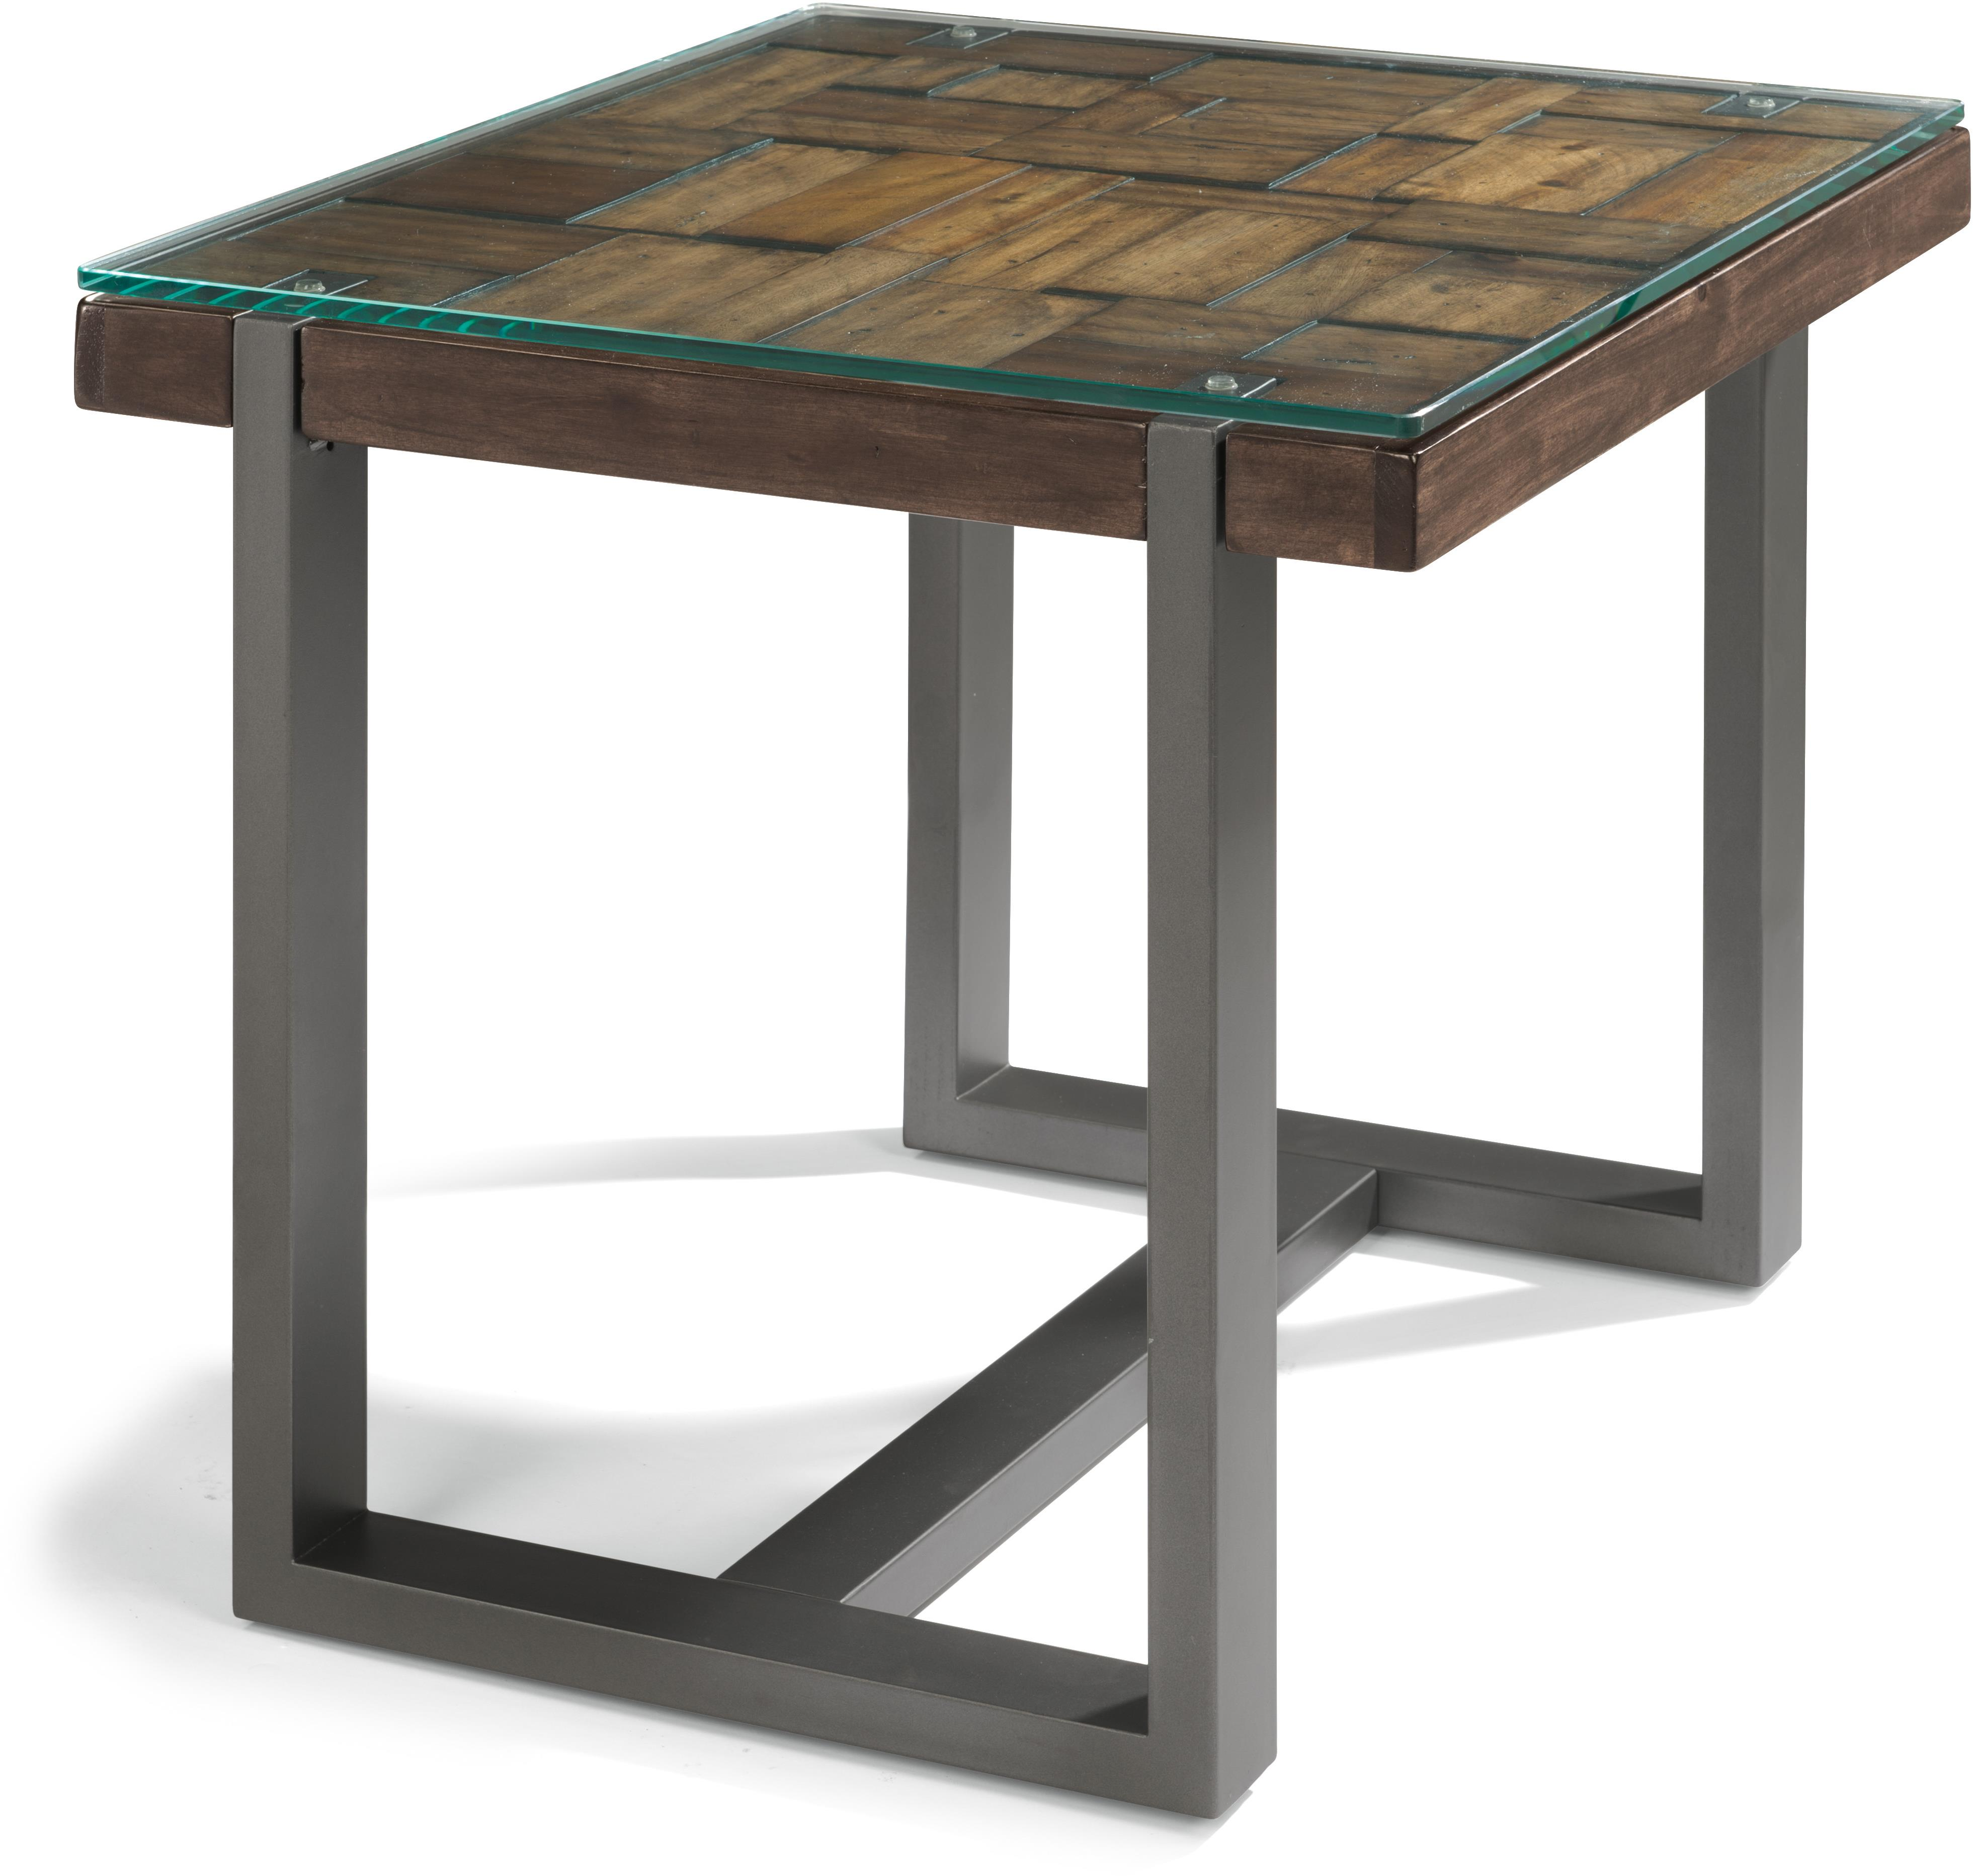 Flexsteel Patchwork End Table  - Item Number: W1415-01